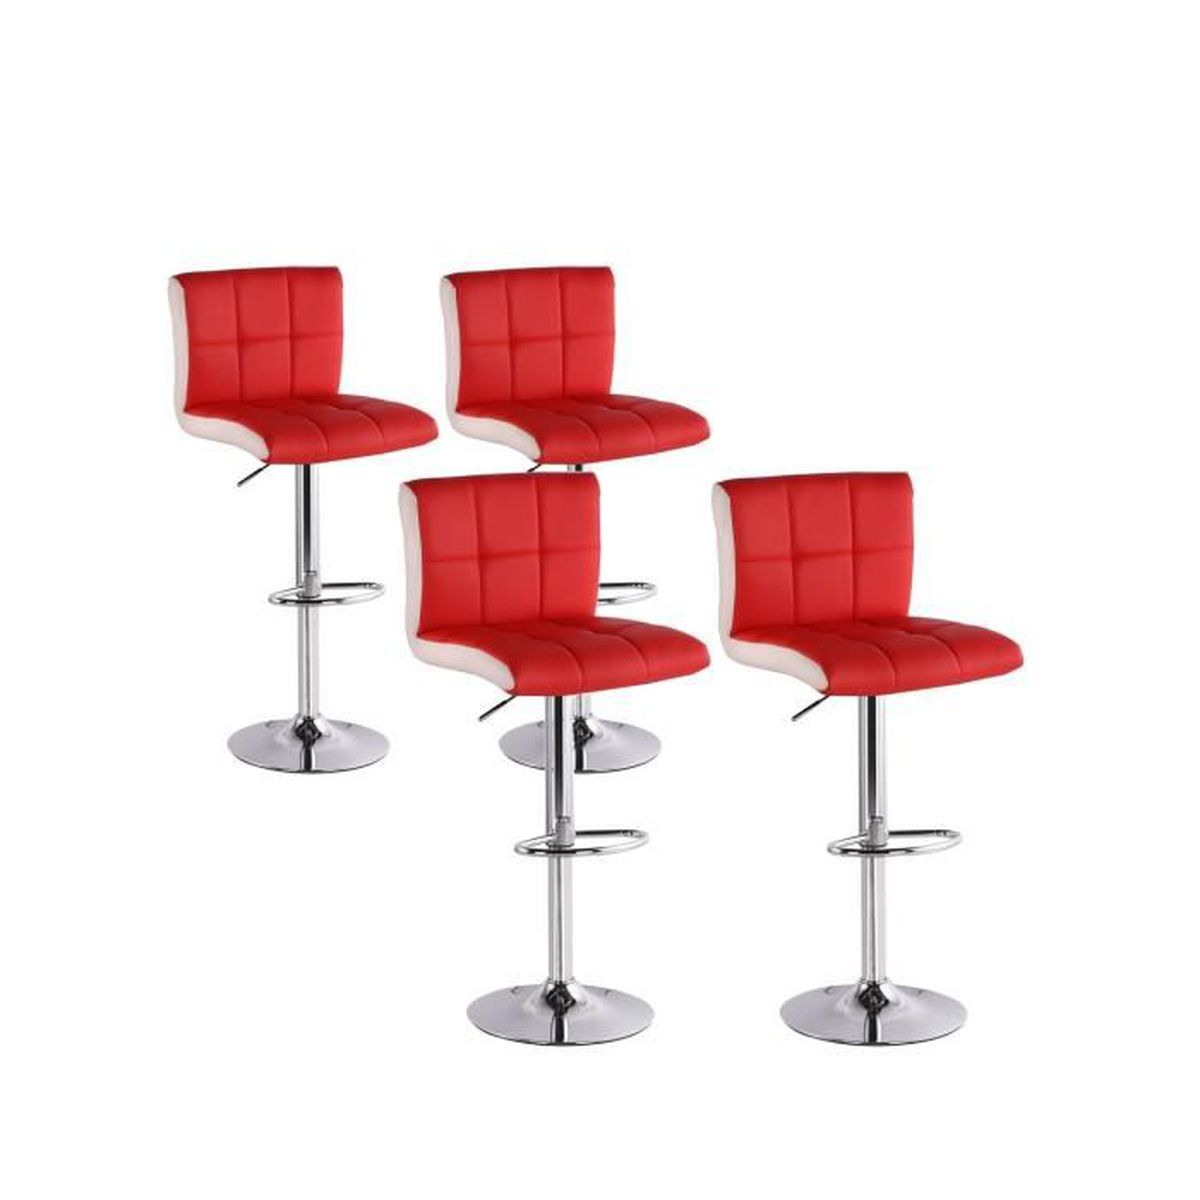 1efc35ddb502d4 Lot de 4 tabourets de bar Magic Rouge - Achat   Vente tabouret de ...